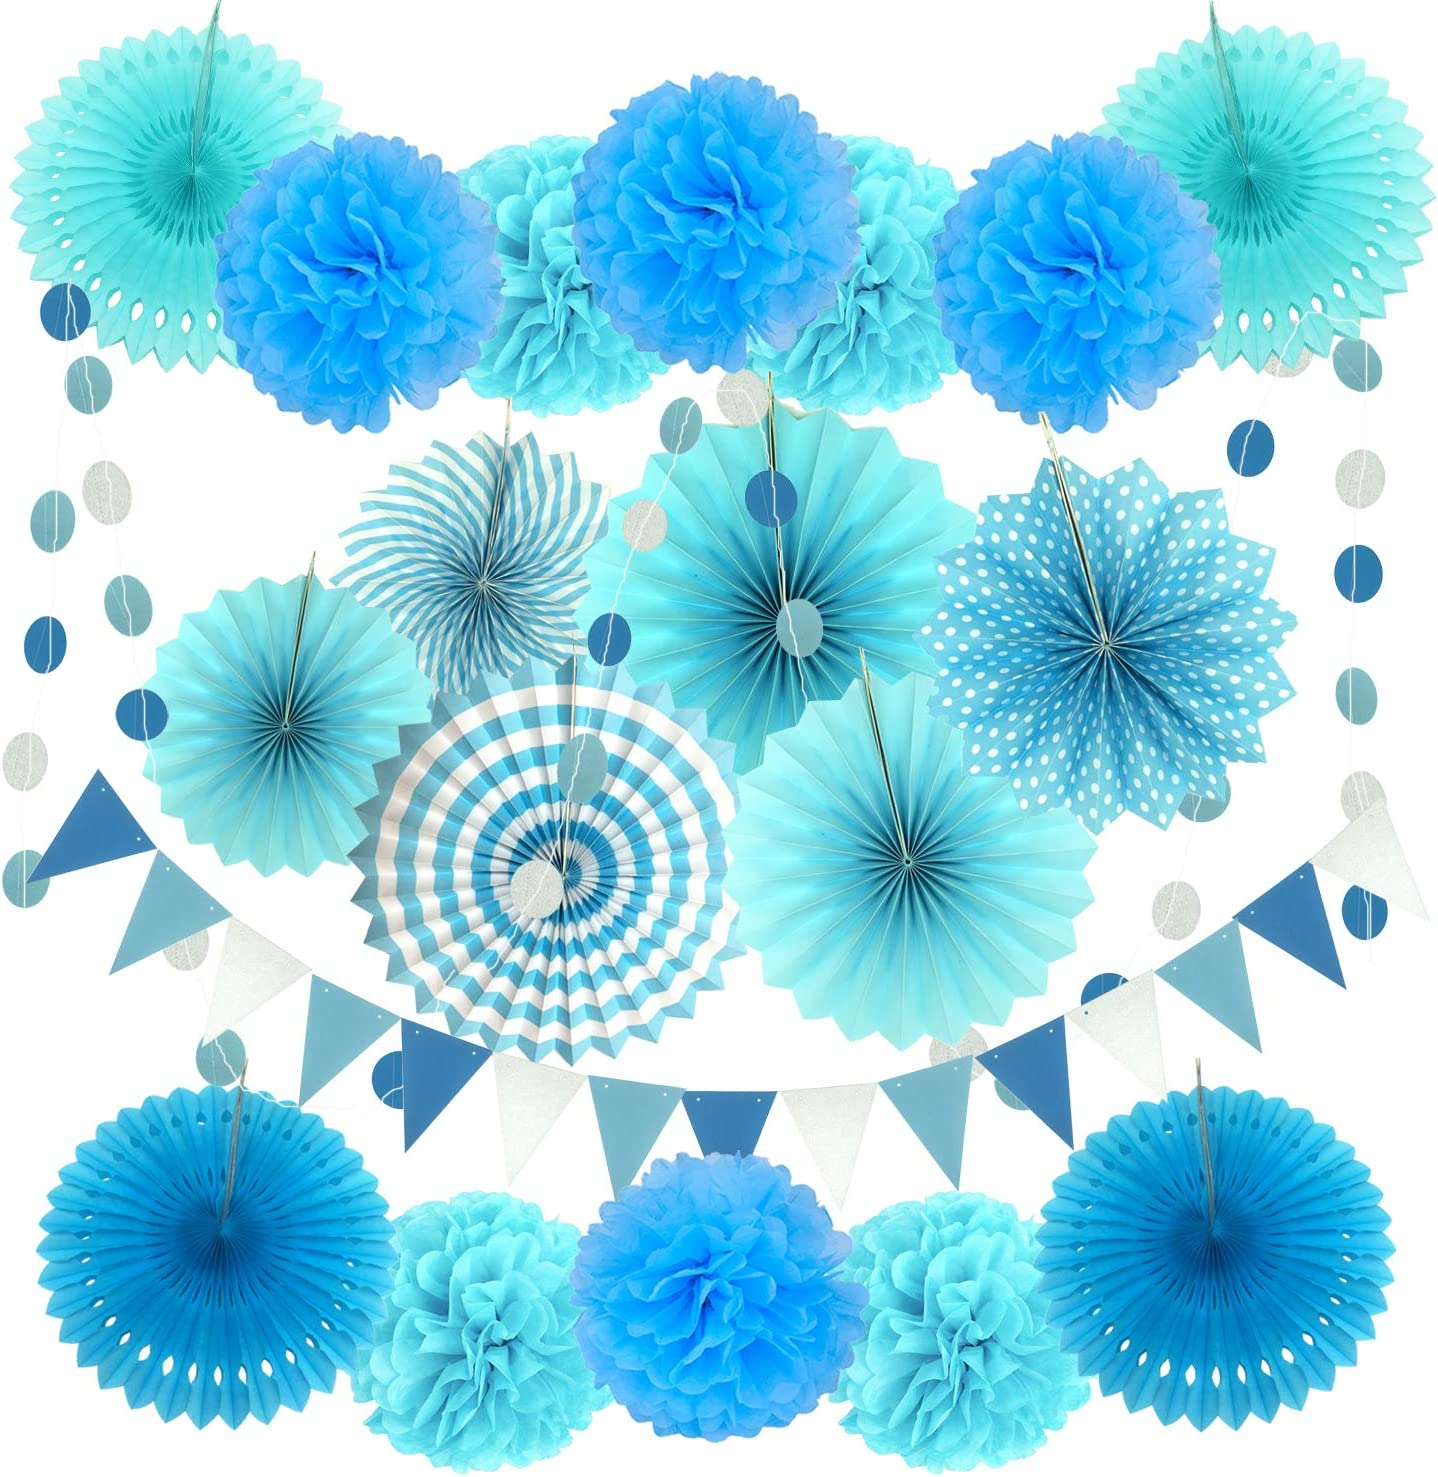 ZERODECO Party Decoration, 21 Pcs Blue Hanging Paper Fans, Pom Poms Flowers, Garlands String Polka Dot and Triangle Bunting Flags for Boy Birthday Parties, Bridal Showers, Baby Showers, Wedding